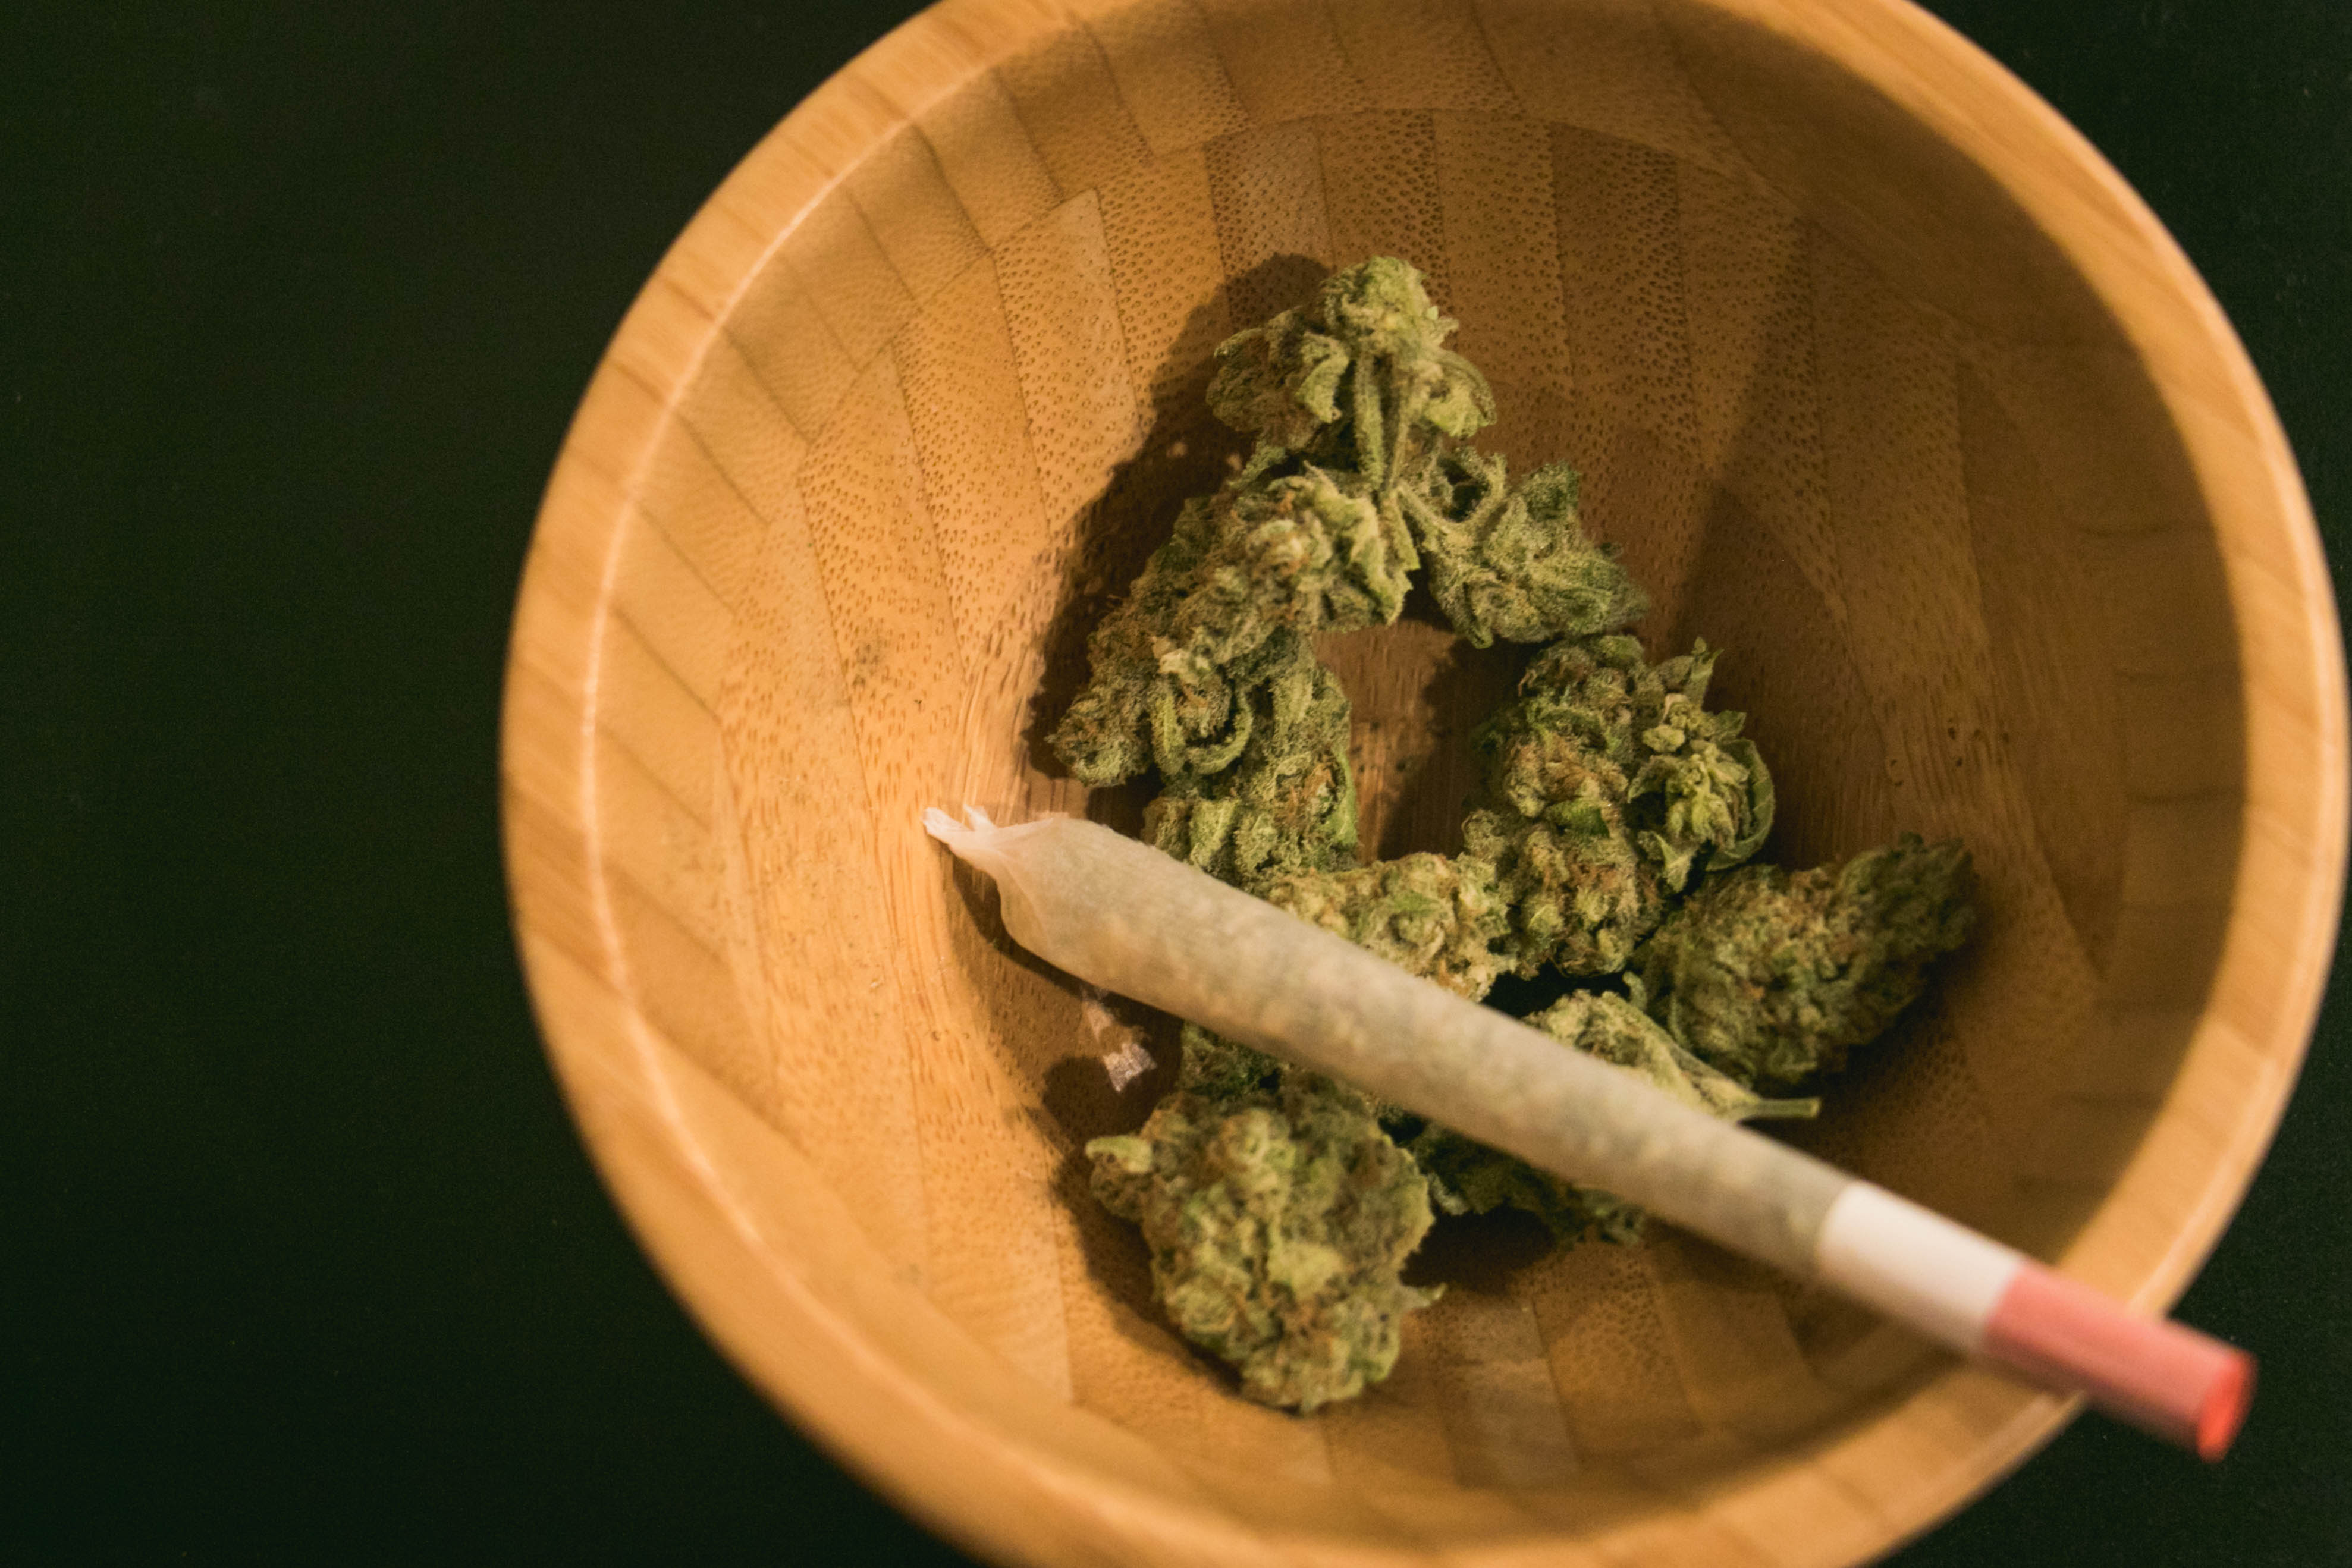 weed sample and joint